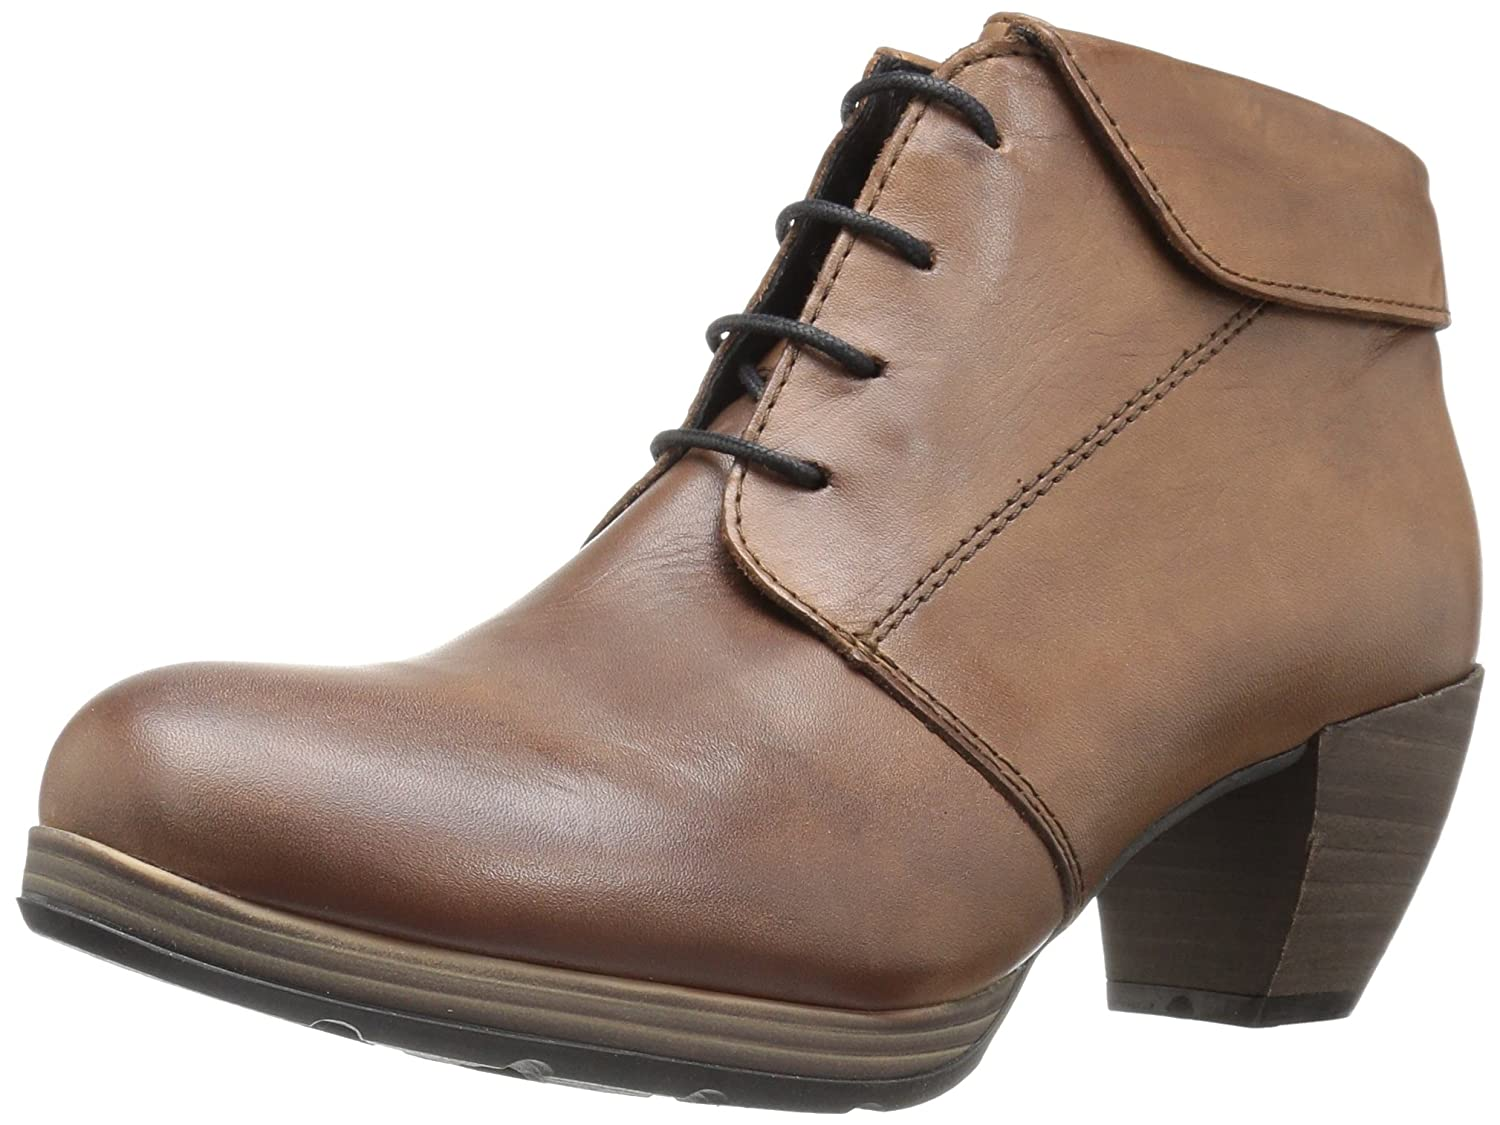 Wolky Comfort Boots 07983 Jacquerie B01CITMUW6 37 M EU / 5.5-6 B(M) US|Cognac Mighty Greased